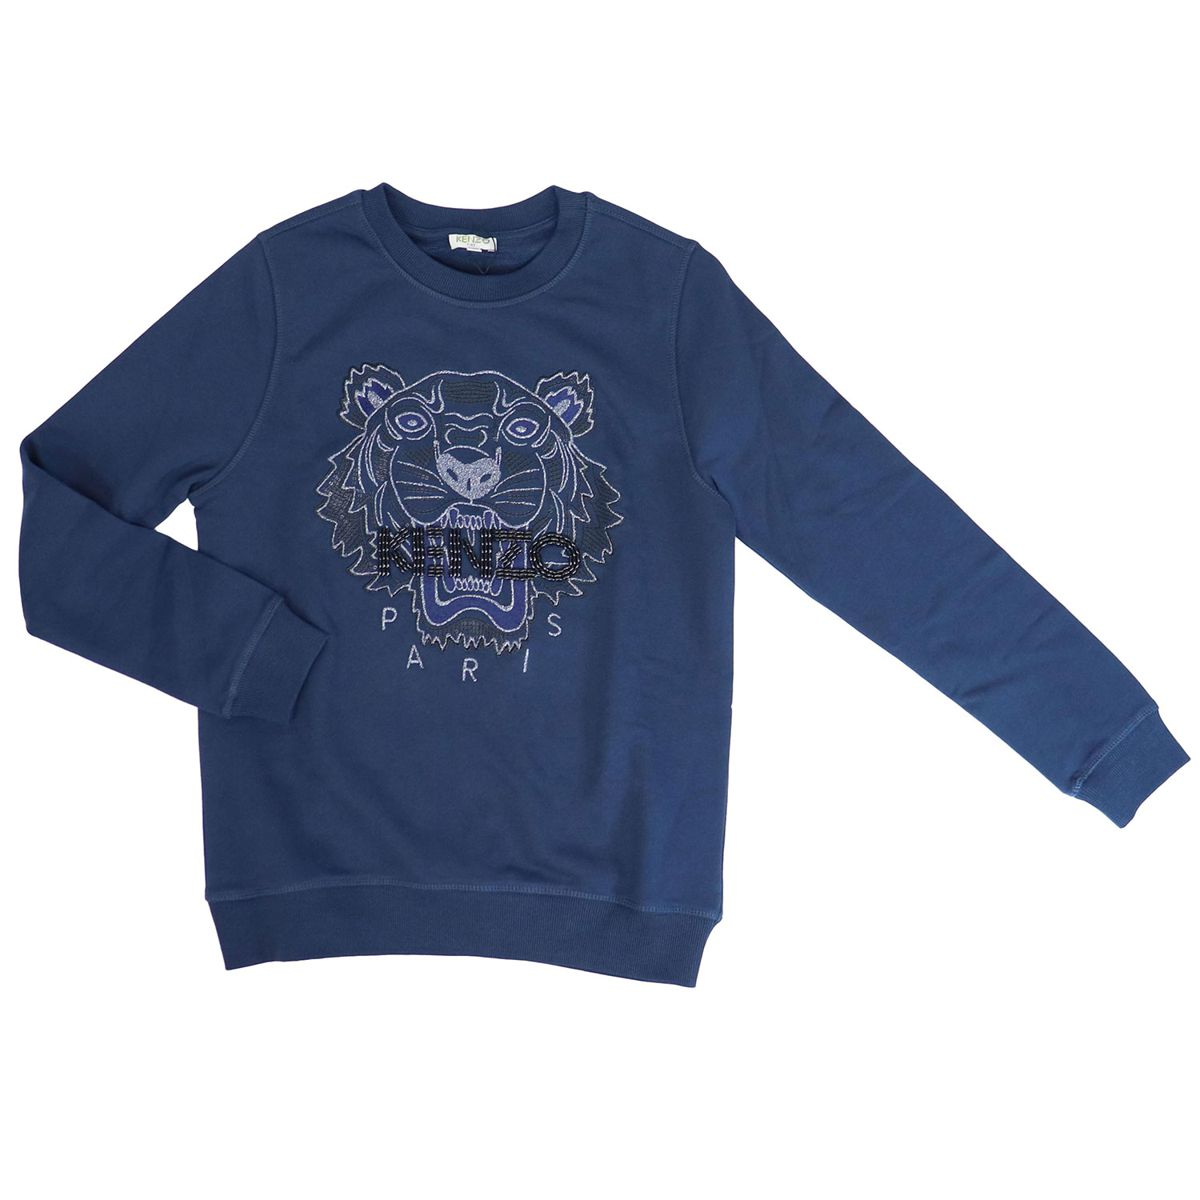 Crewneck sweatshirt with large embroidered logo with sequins Blue Kenzo